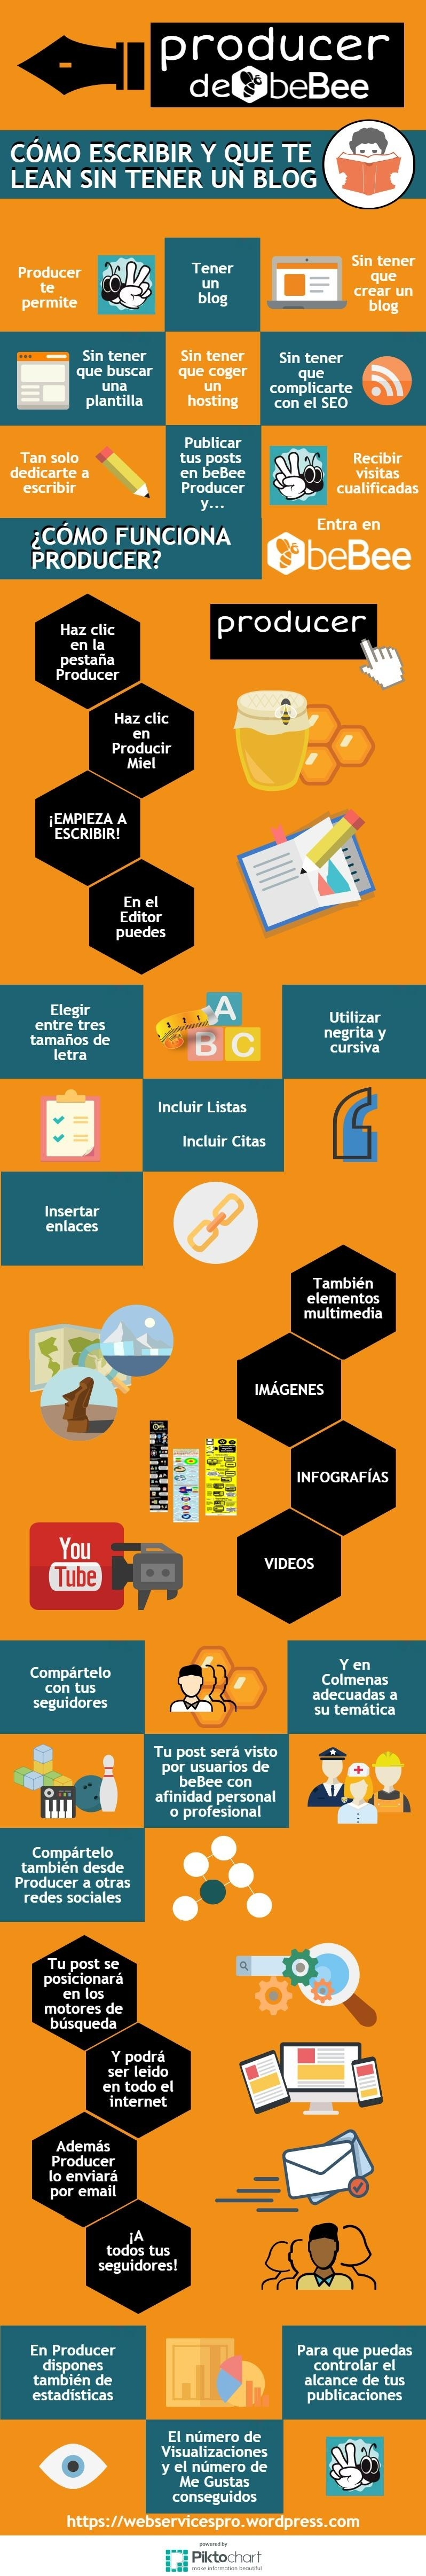 producer-bebee-infografia